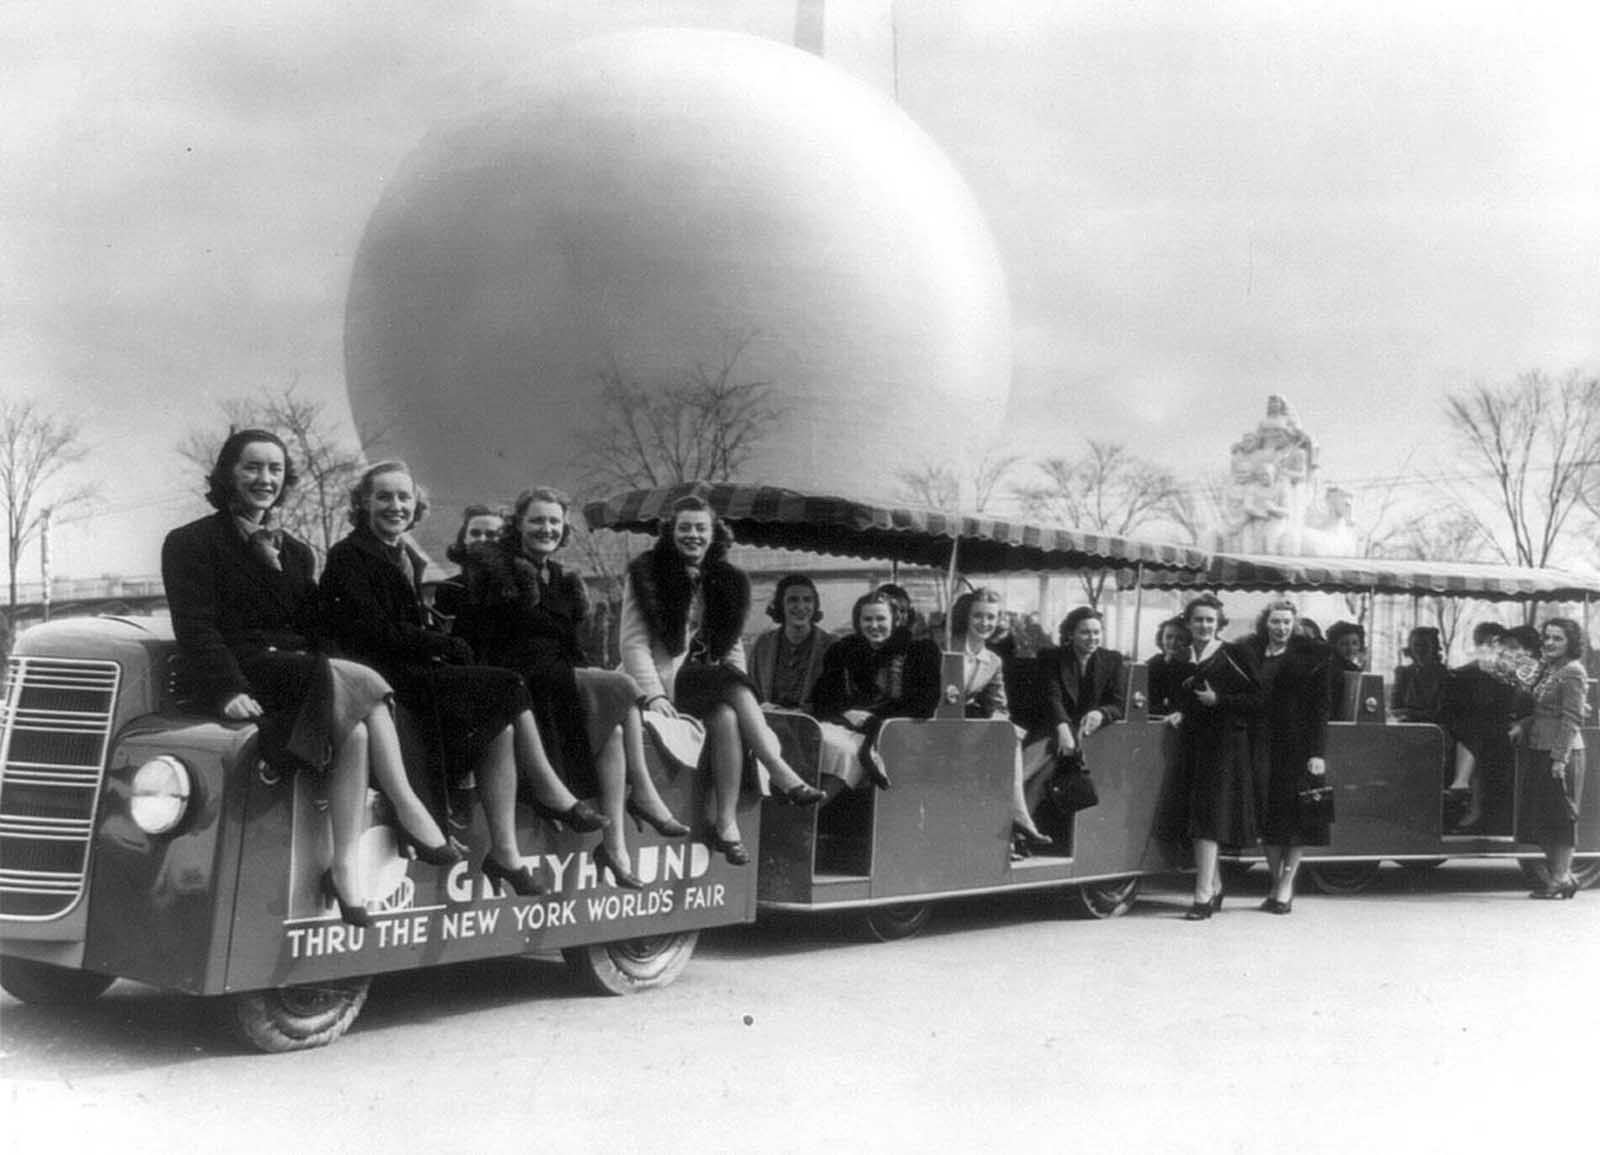 Members of the New York World's Fair staff, on a tractor train in 1939.